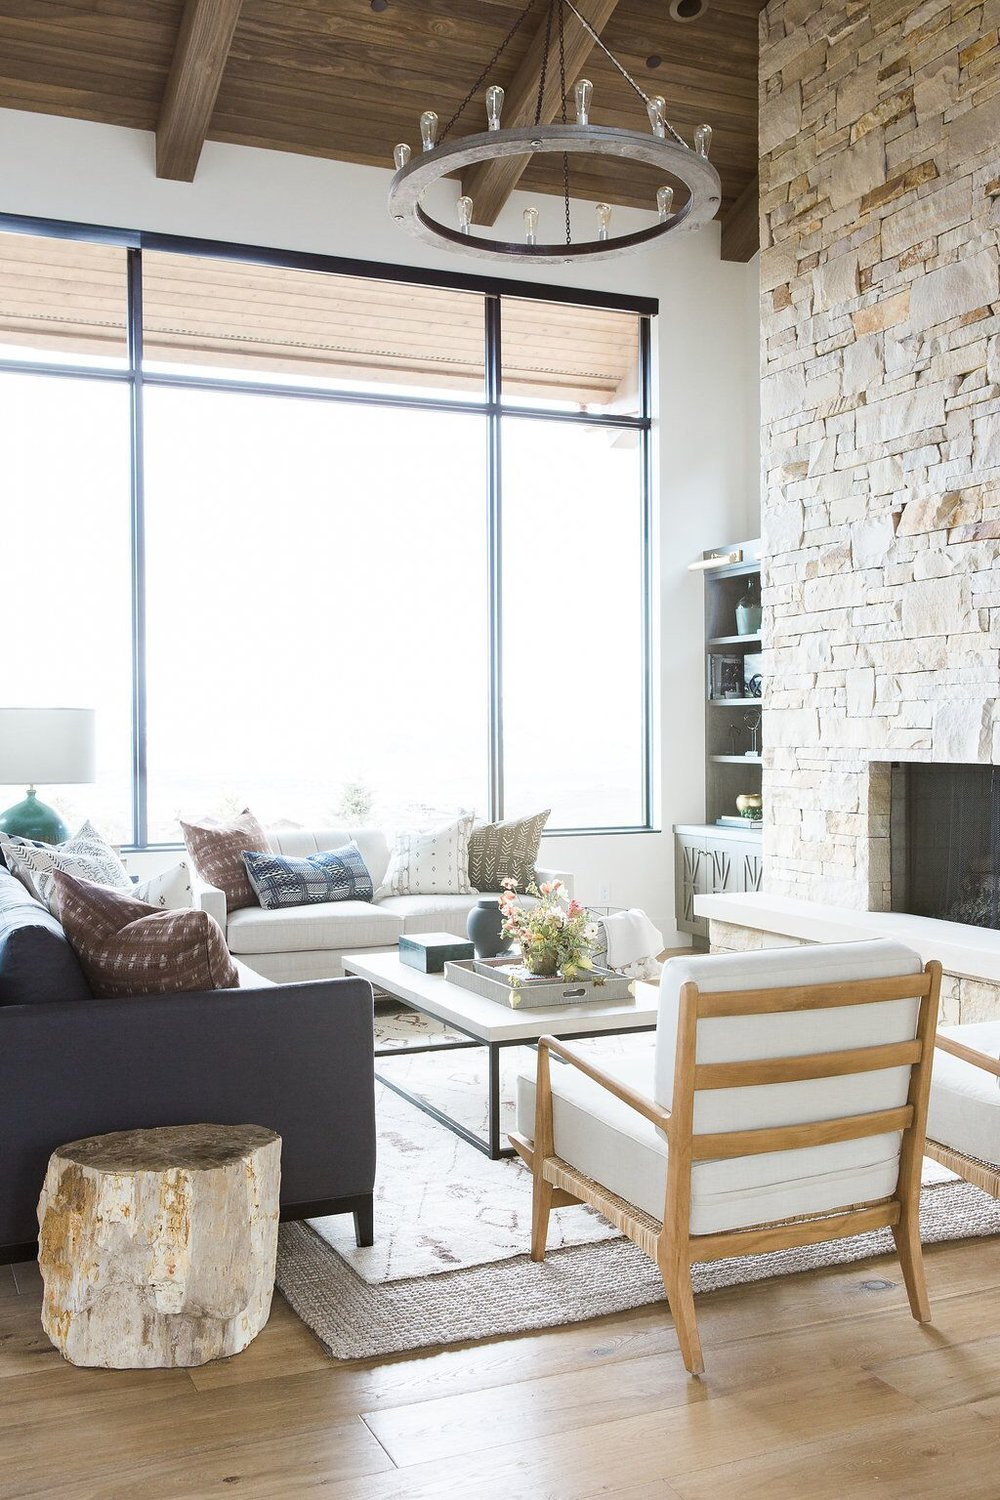 White chair and grey couch in modern living room